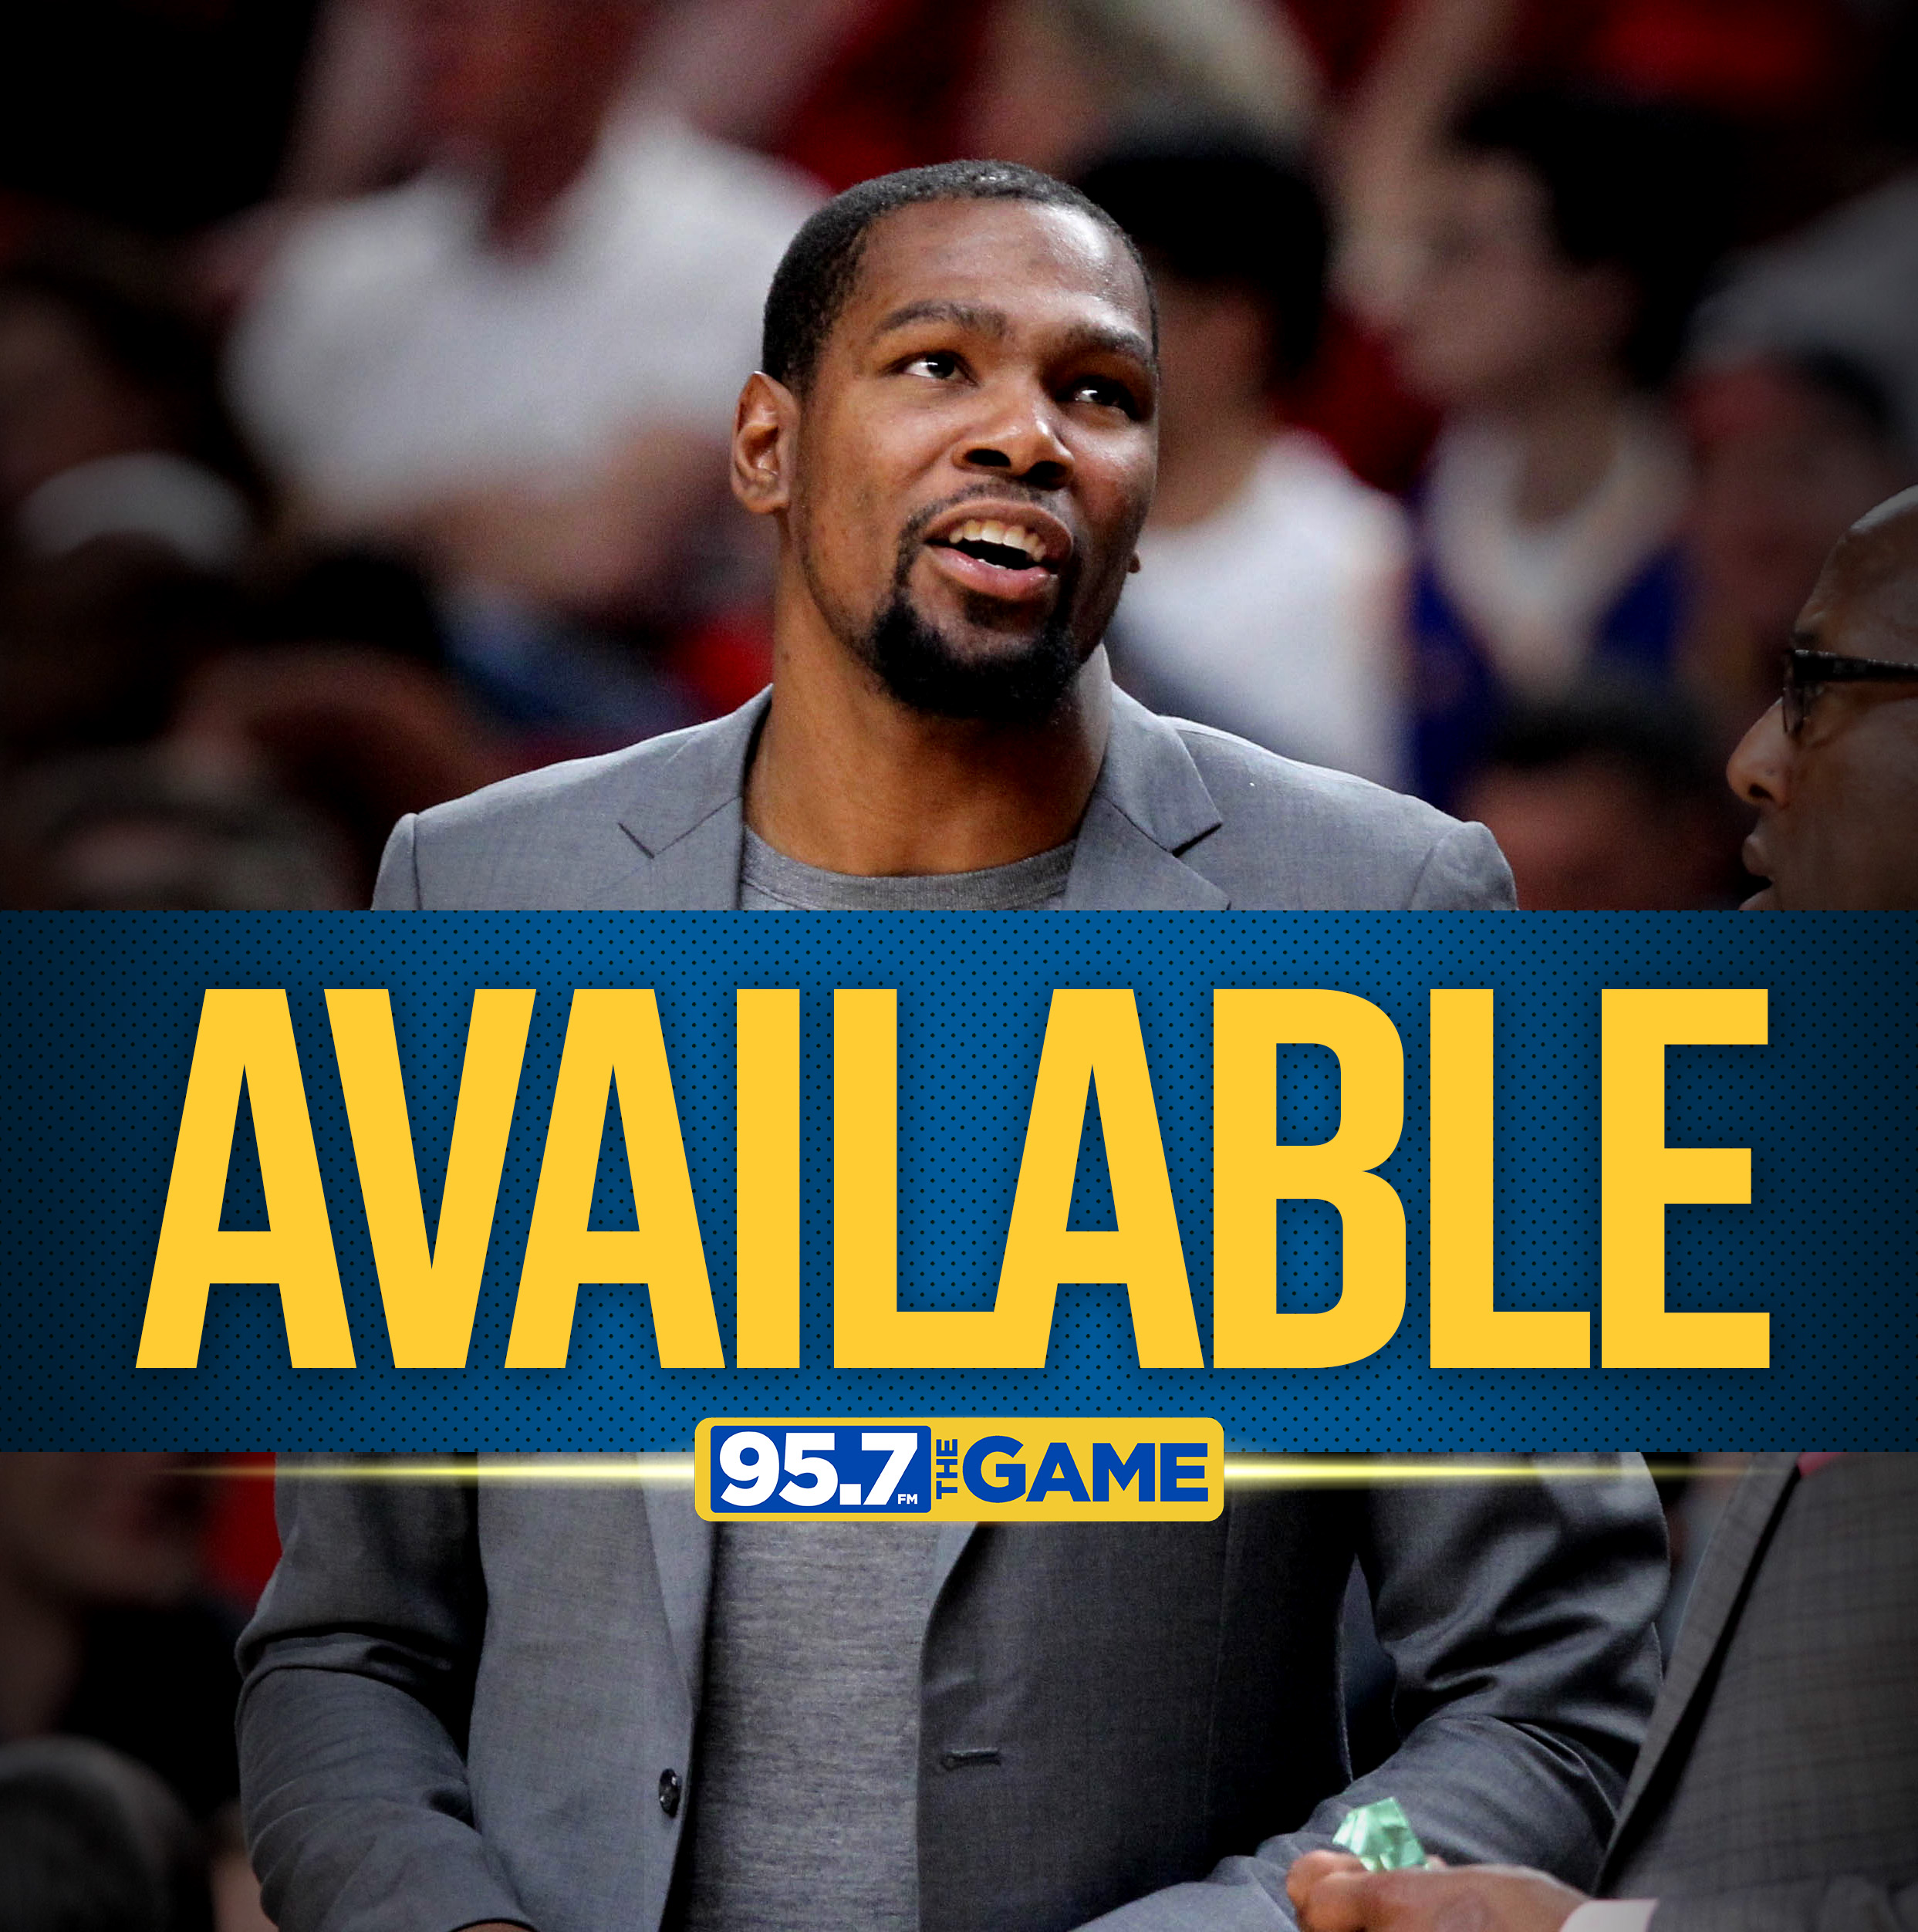 Warriors Sharks Live Stream Free: UPDATE: Kevin Durant Will START In GAME 4